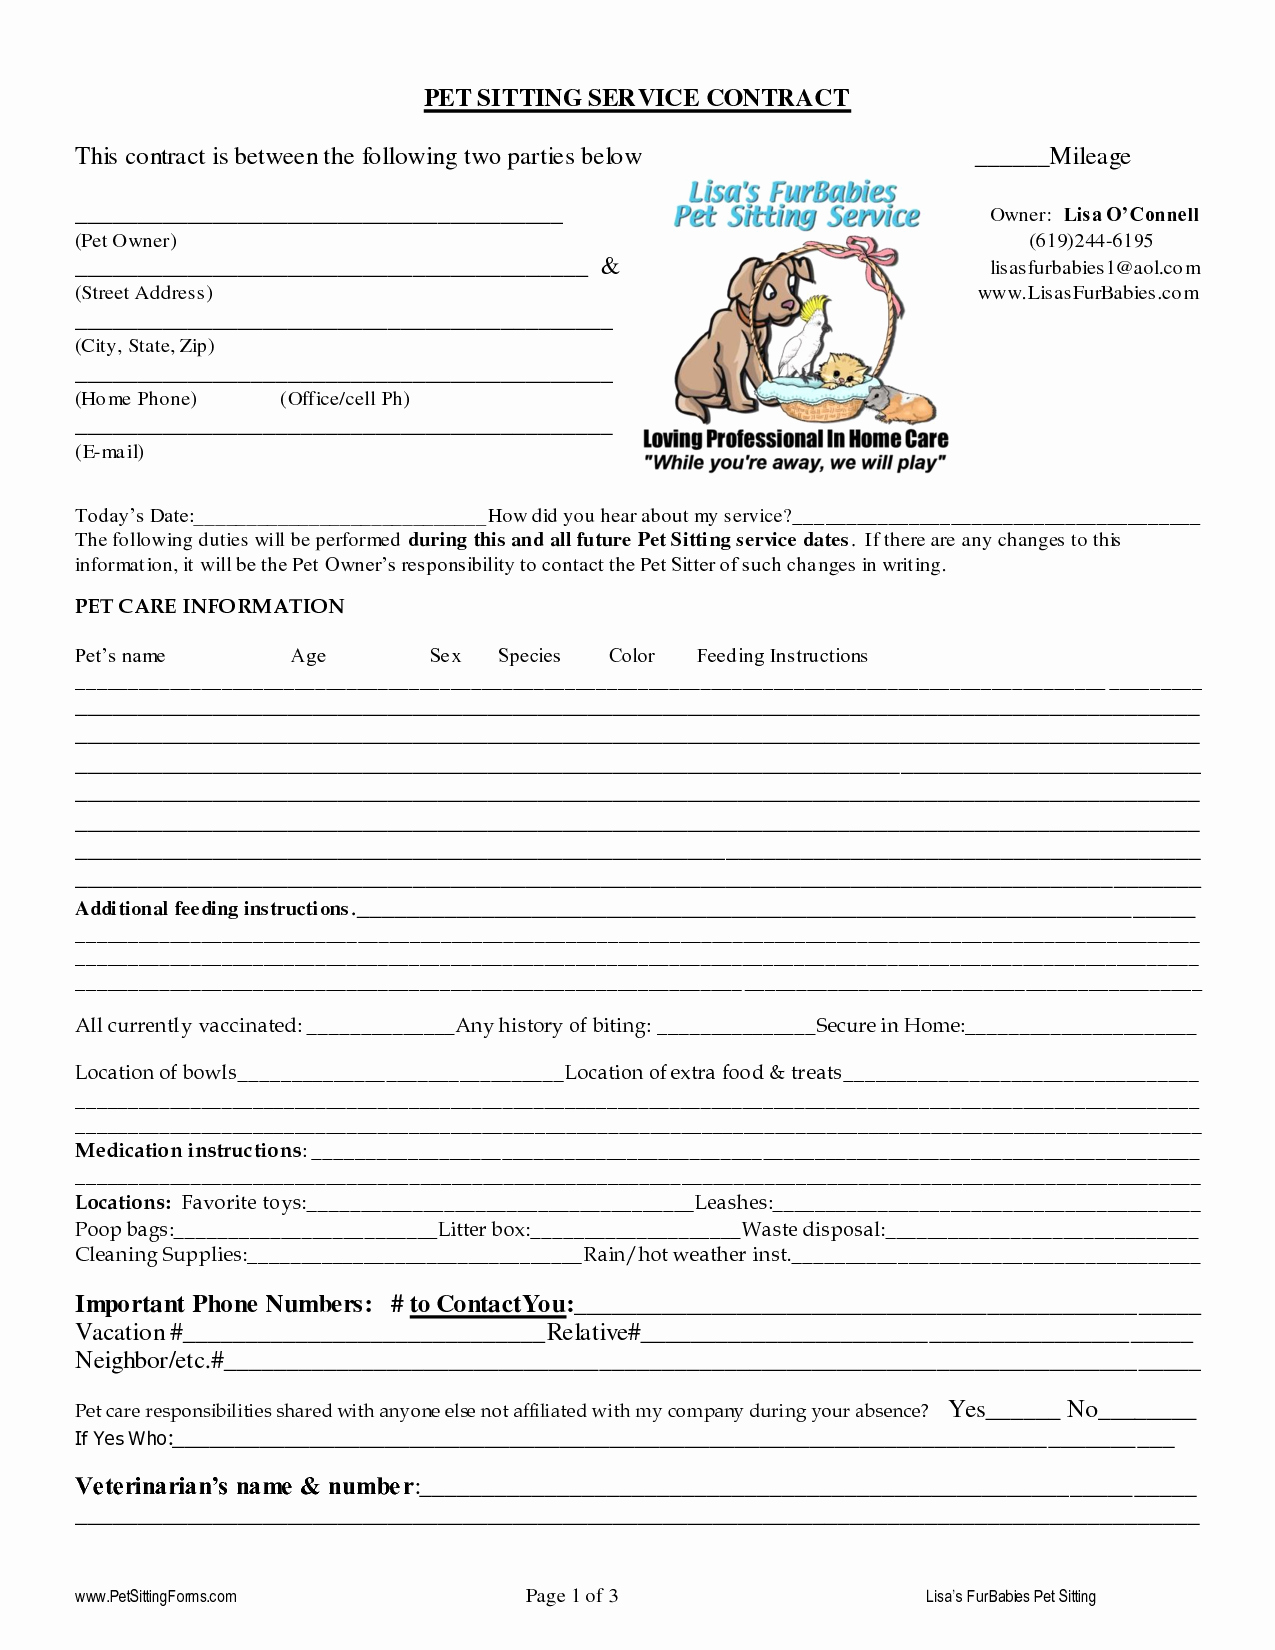 Dog Training Contract Template Luxury Pet Sitting Contract Templates Dogs Pinterest